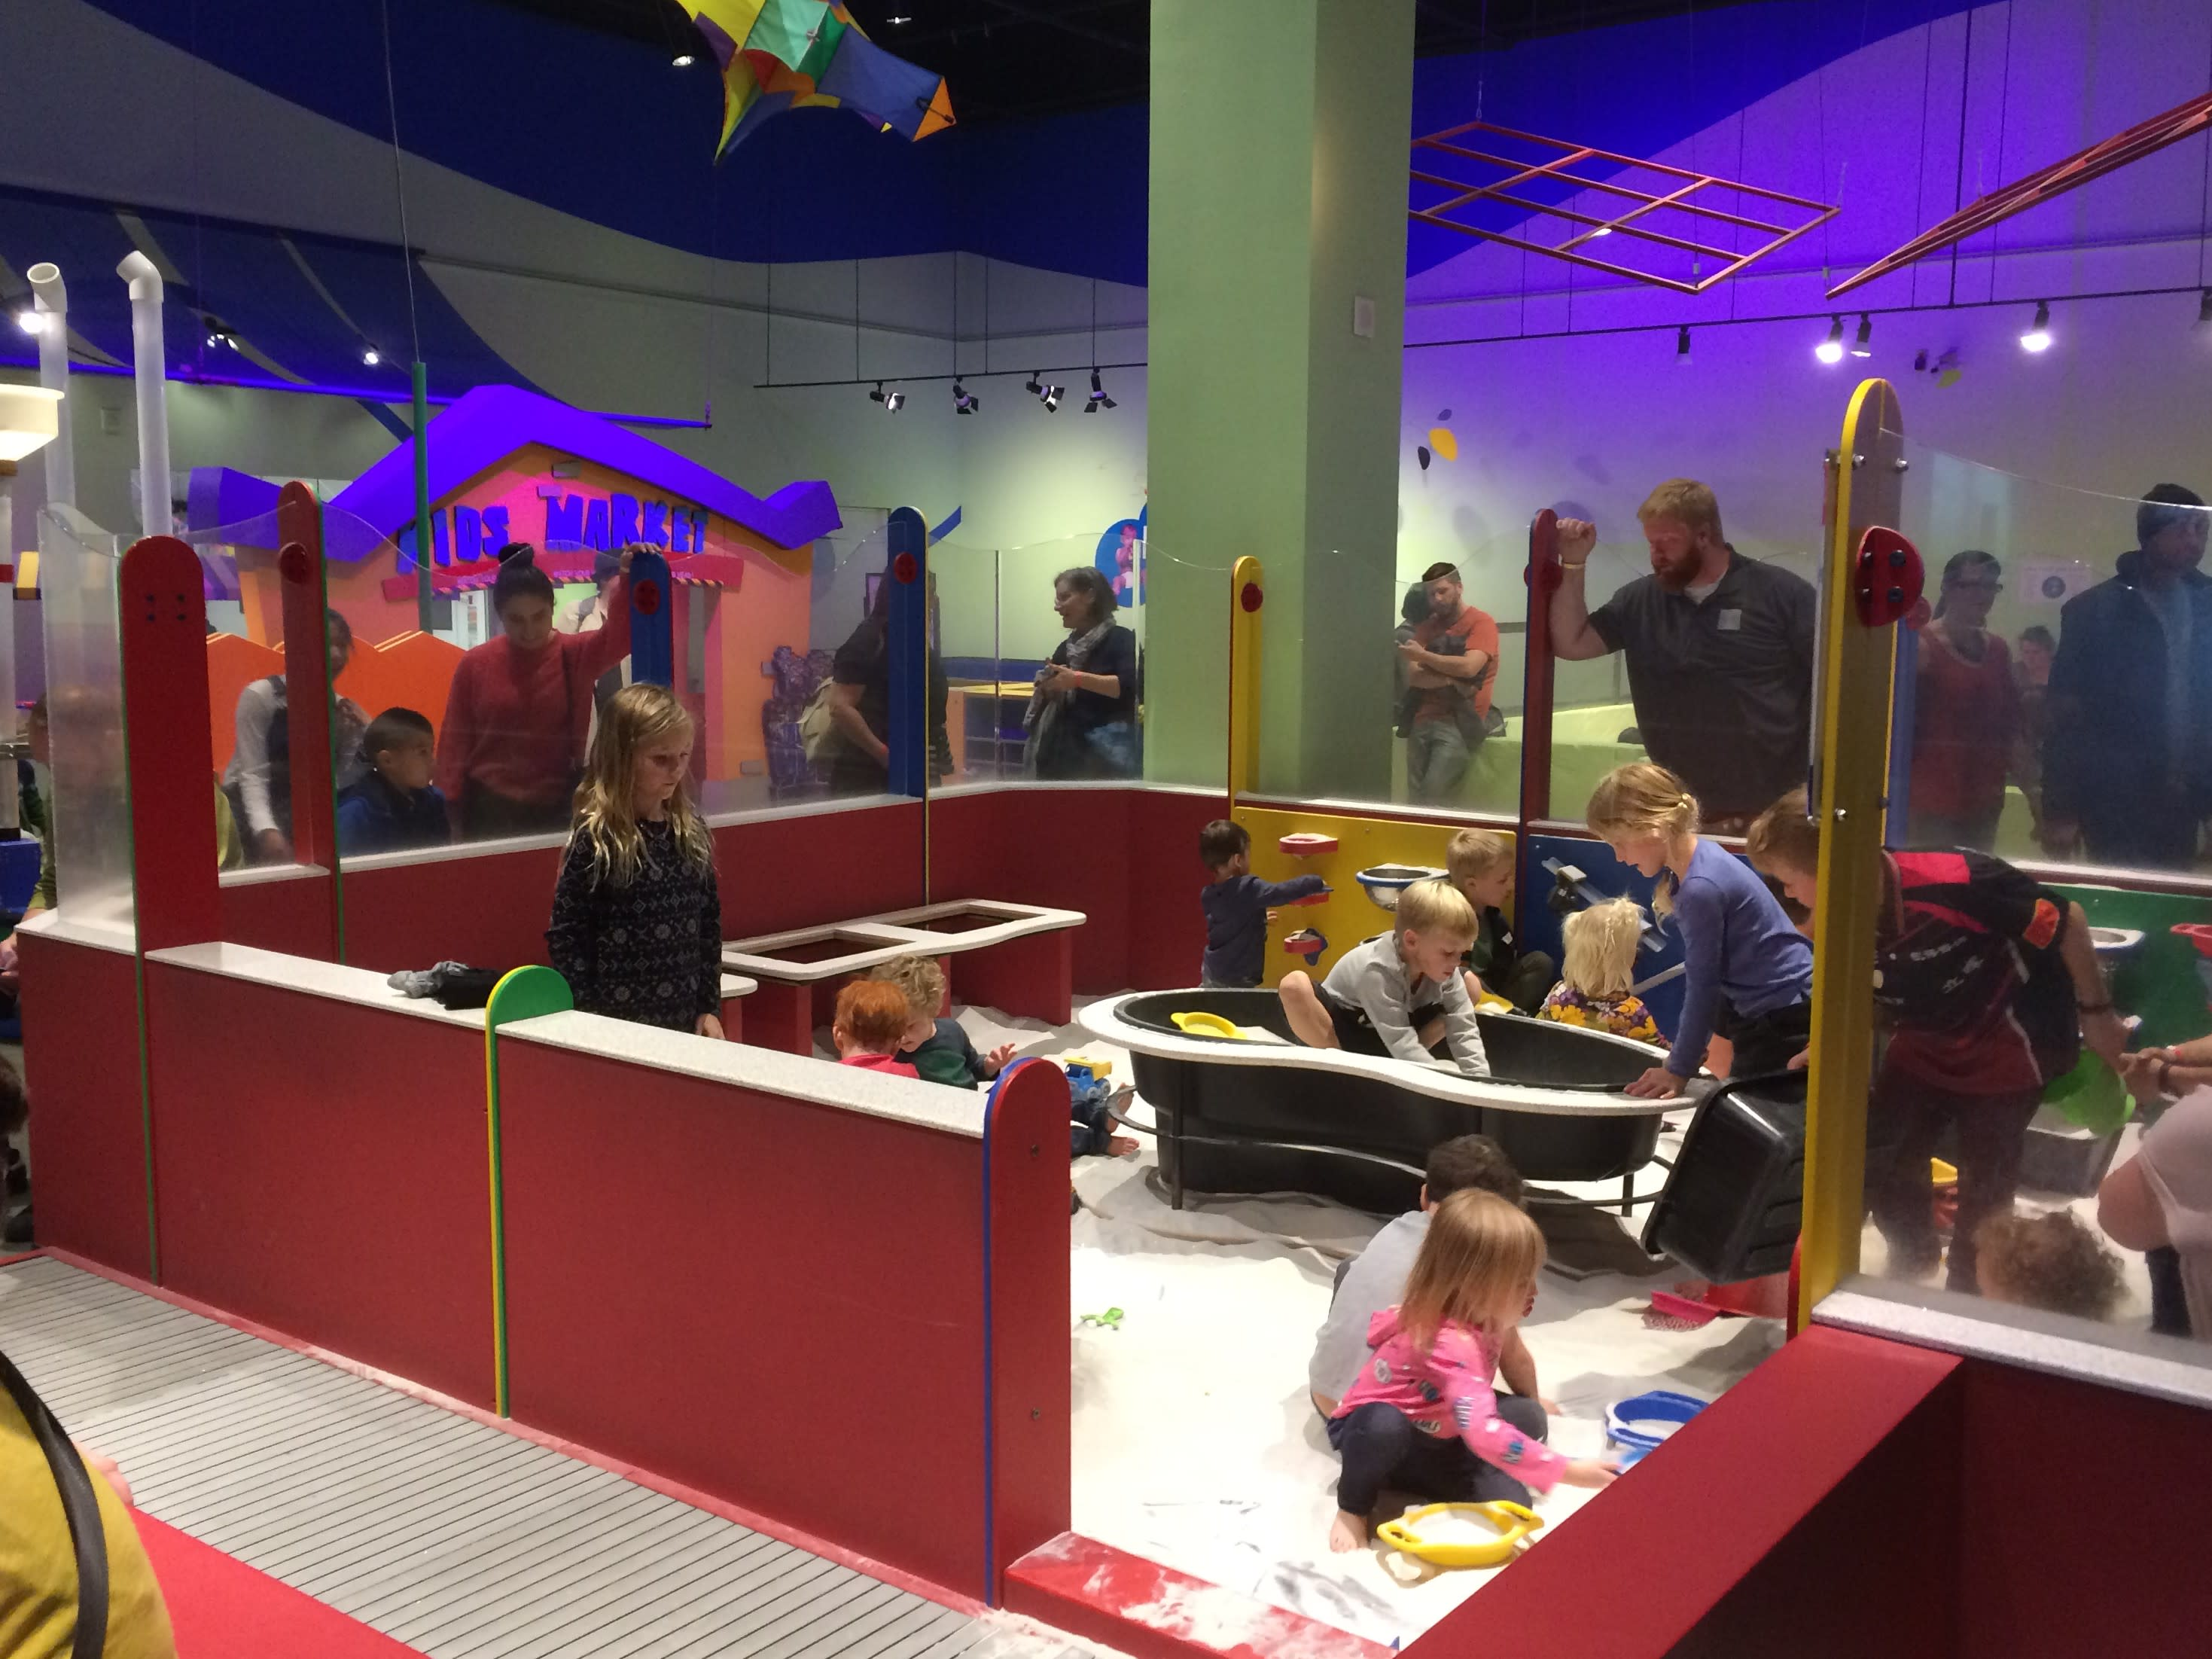 The Science Playground at OMSI